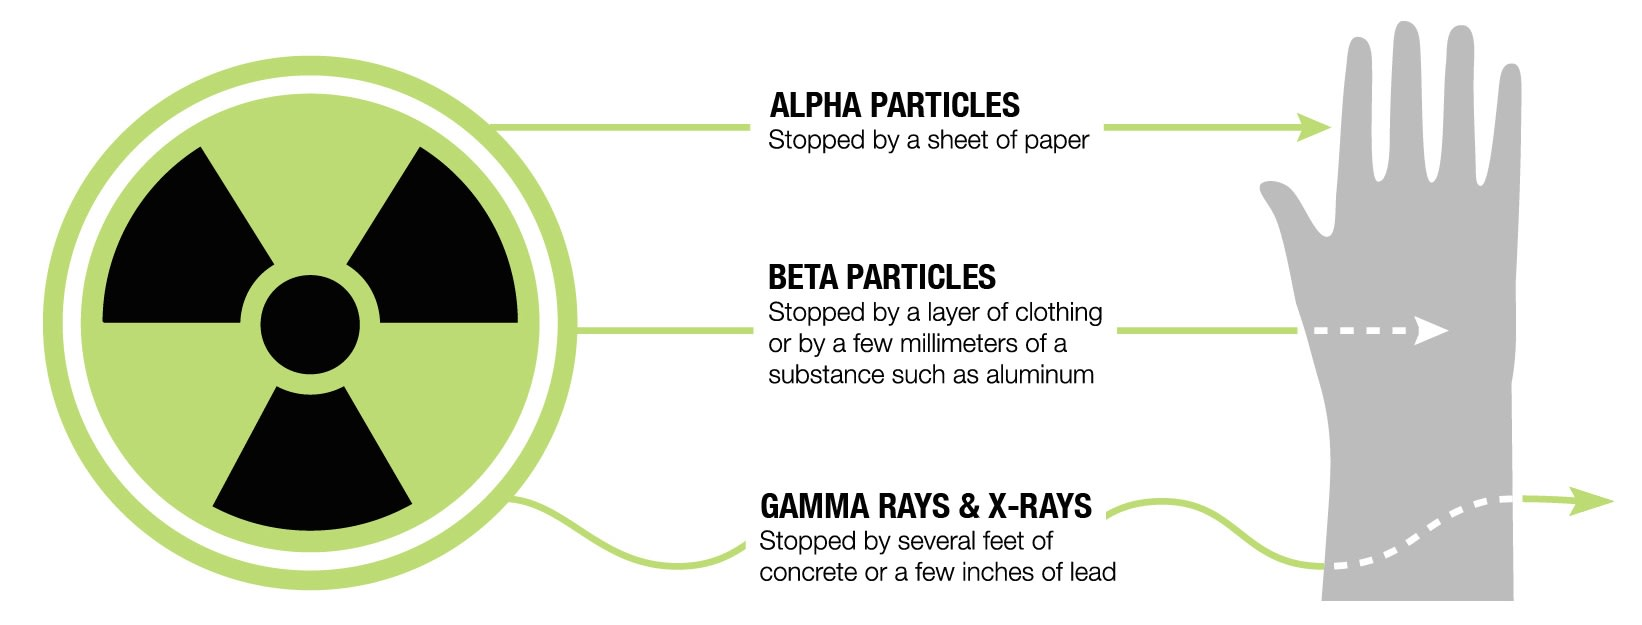 There are three main kinds of ionizing radiation: alpha particles; beta particles; and gamma rays.